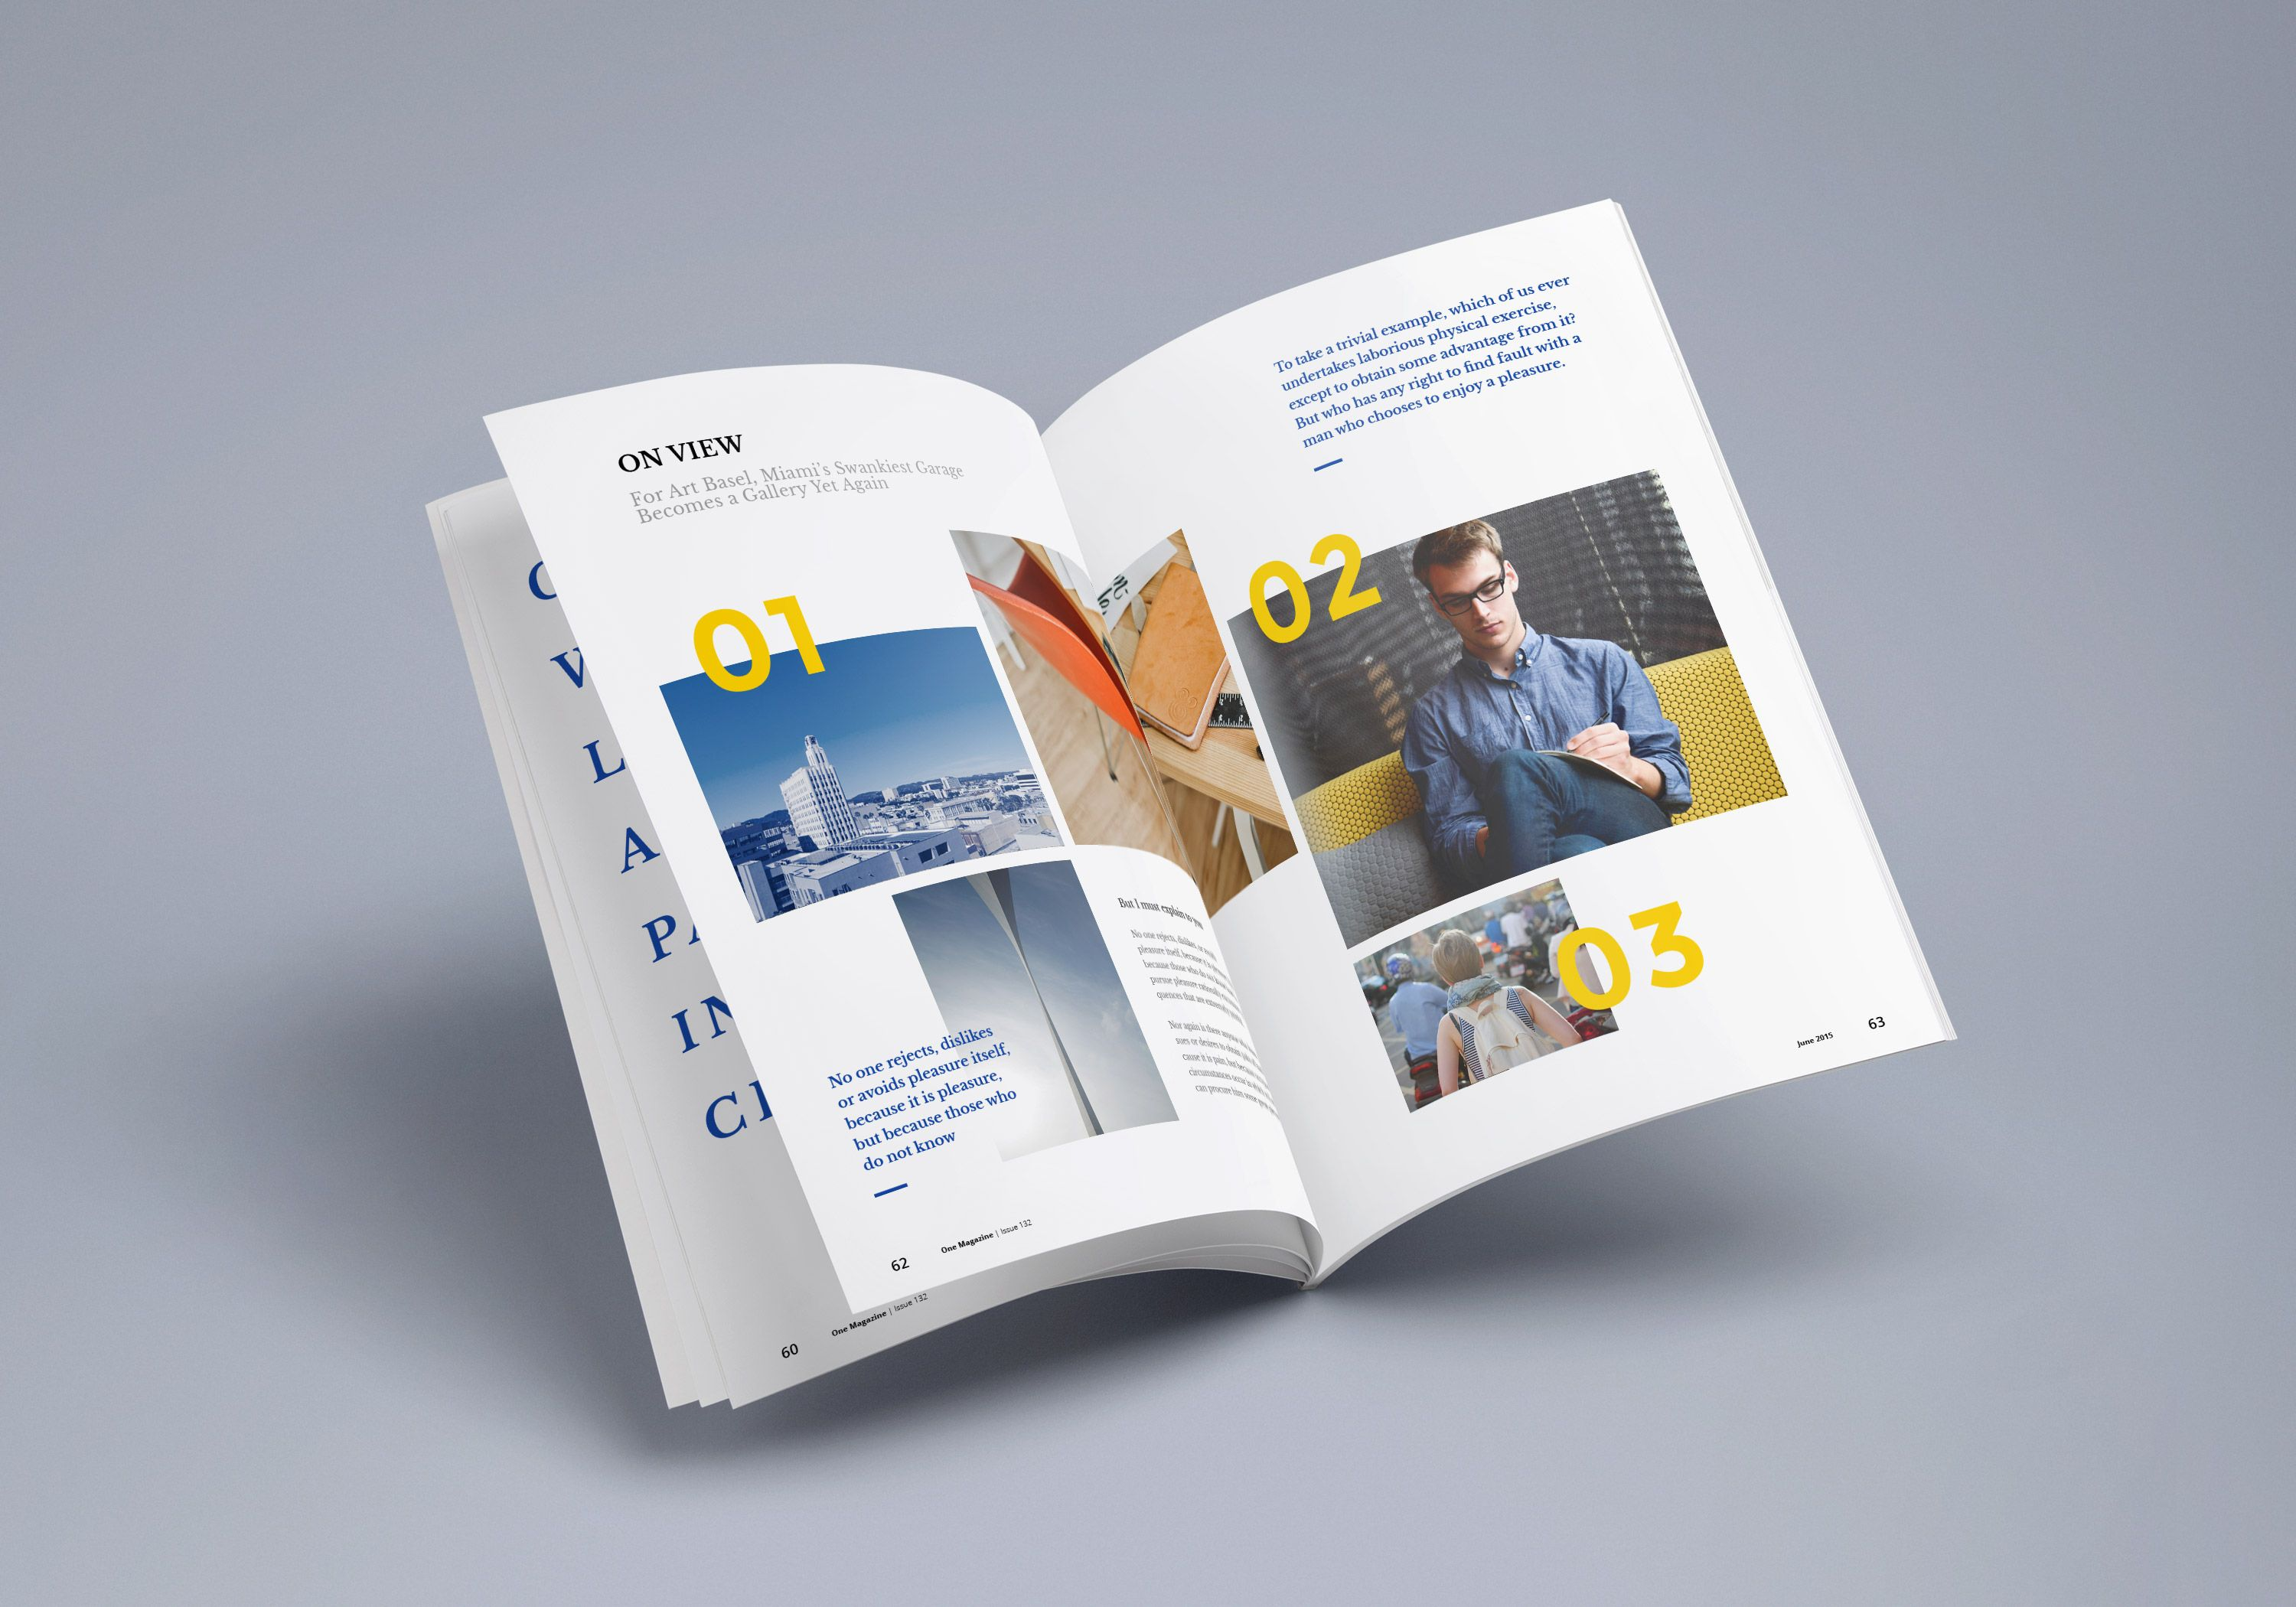 100 high quality free flyer and brochure mock ups.html